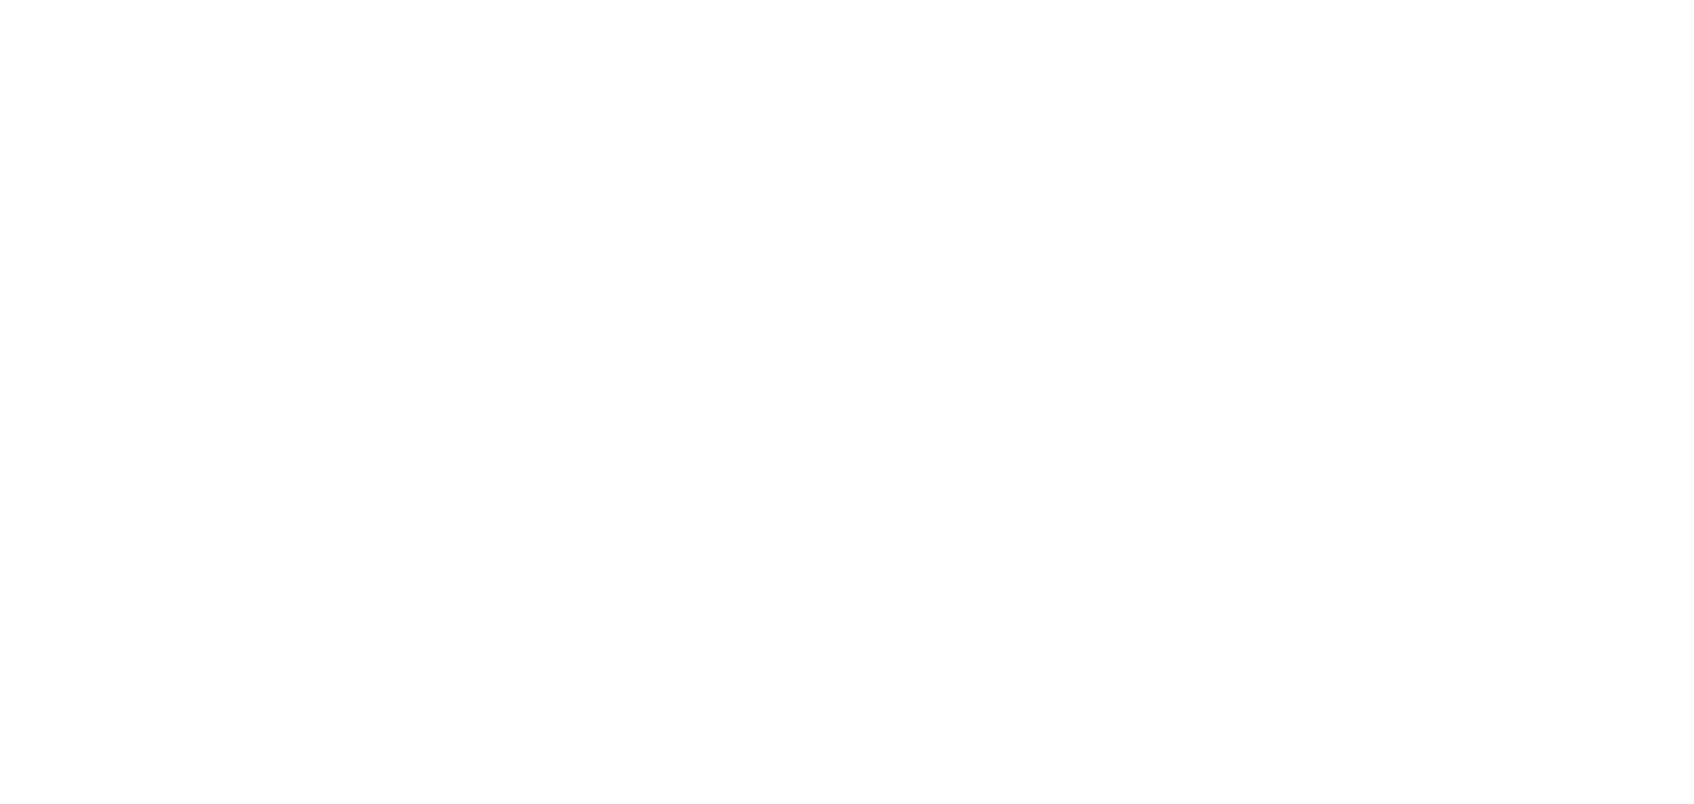 Nominated for Best Youth Film at the BlackStar Film Festival in Philadelphia, 2017.